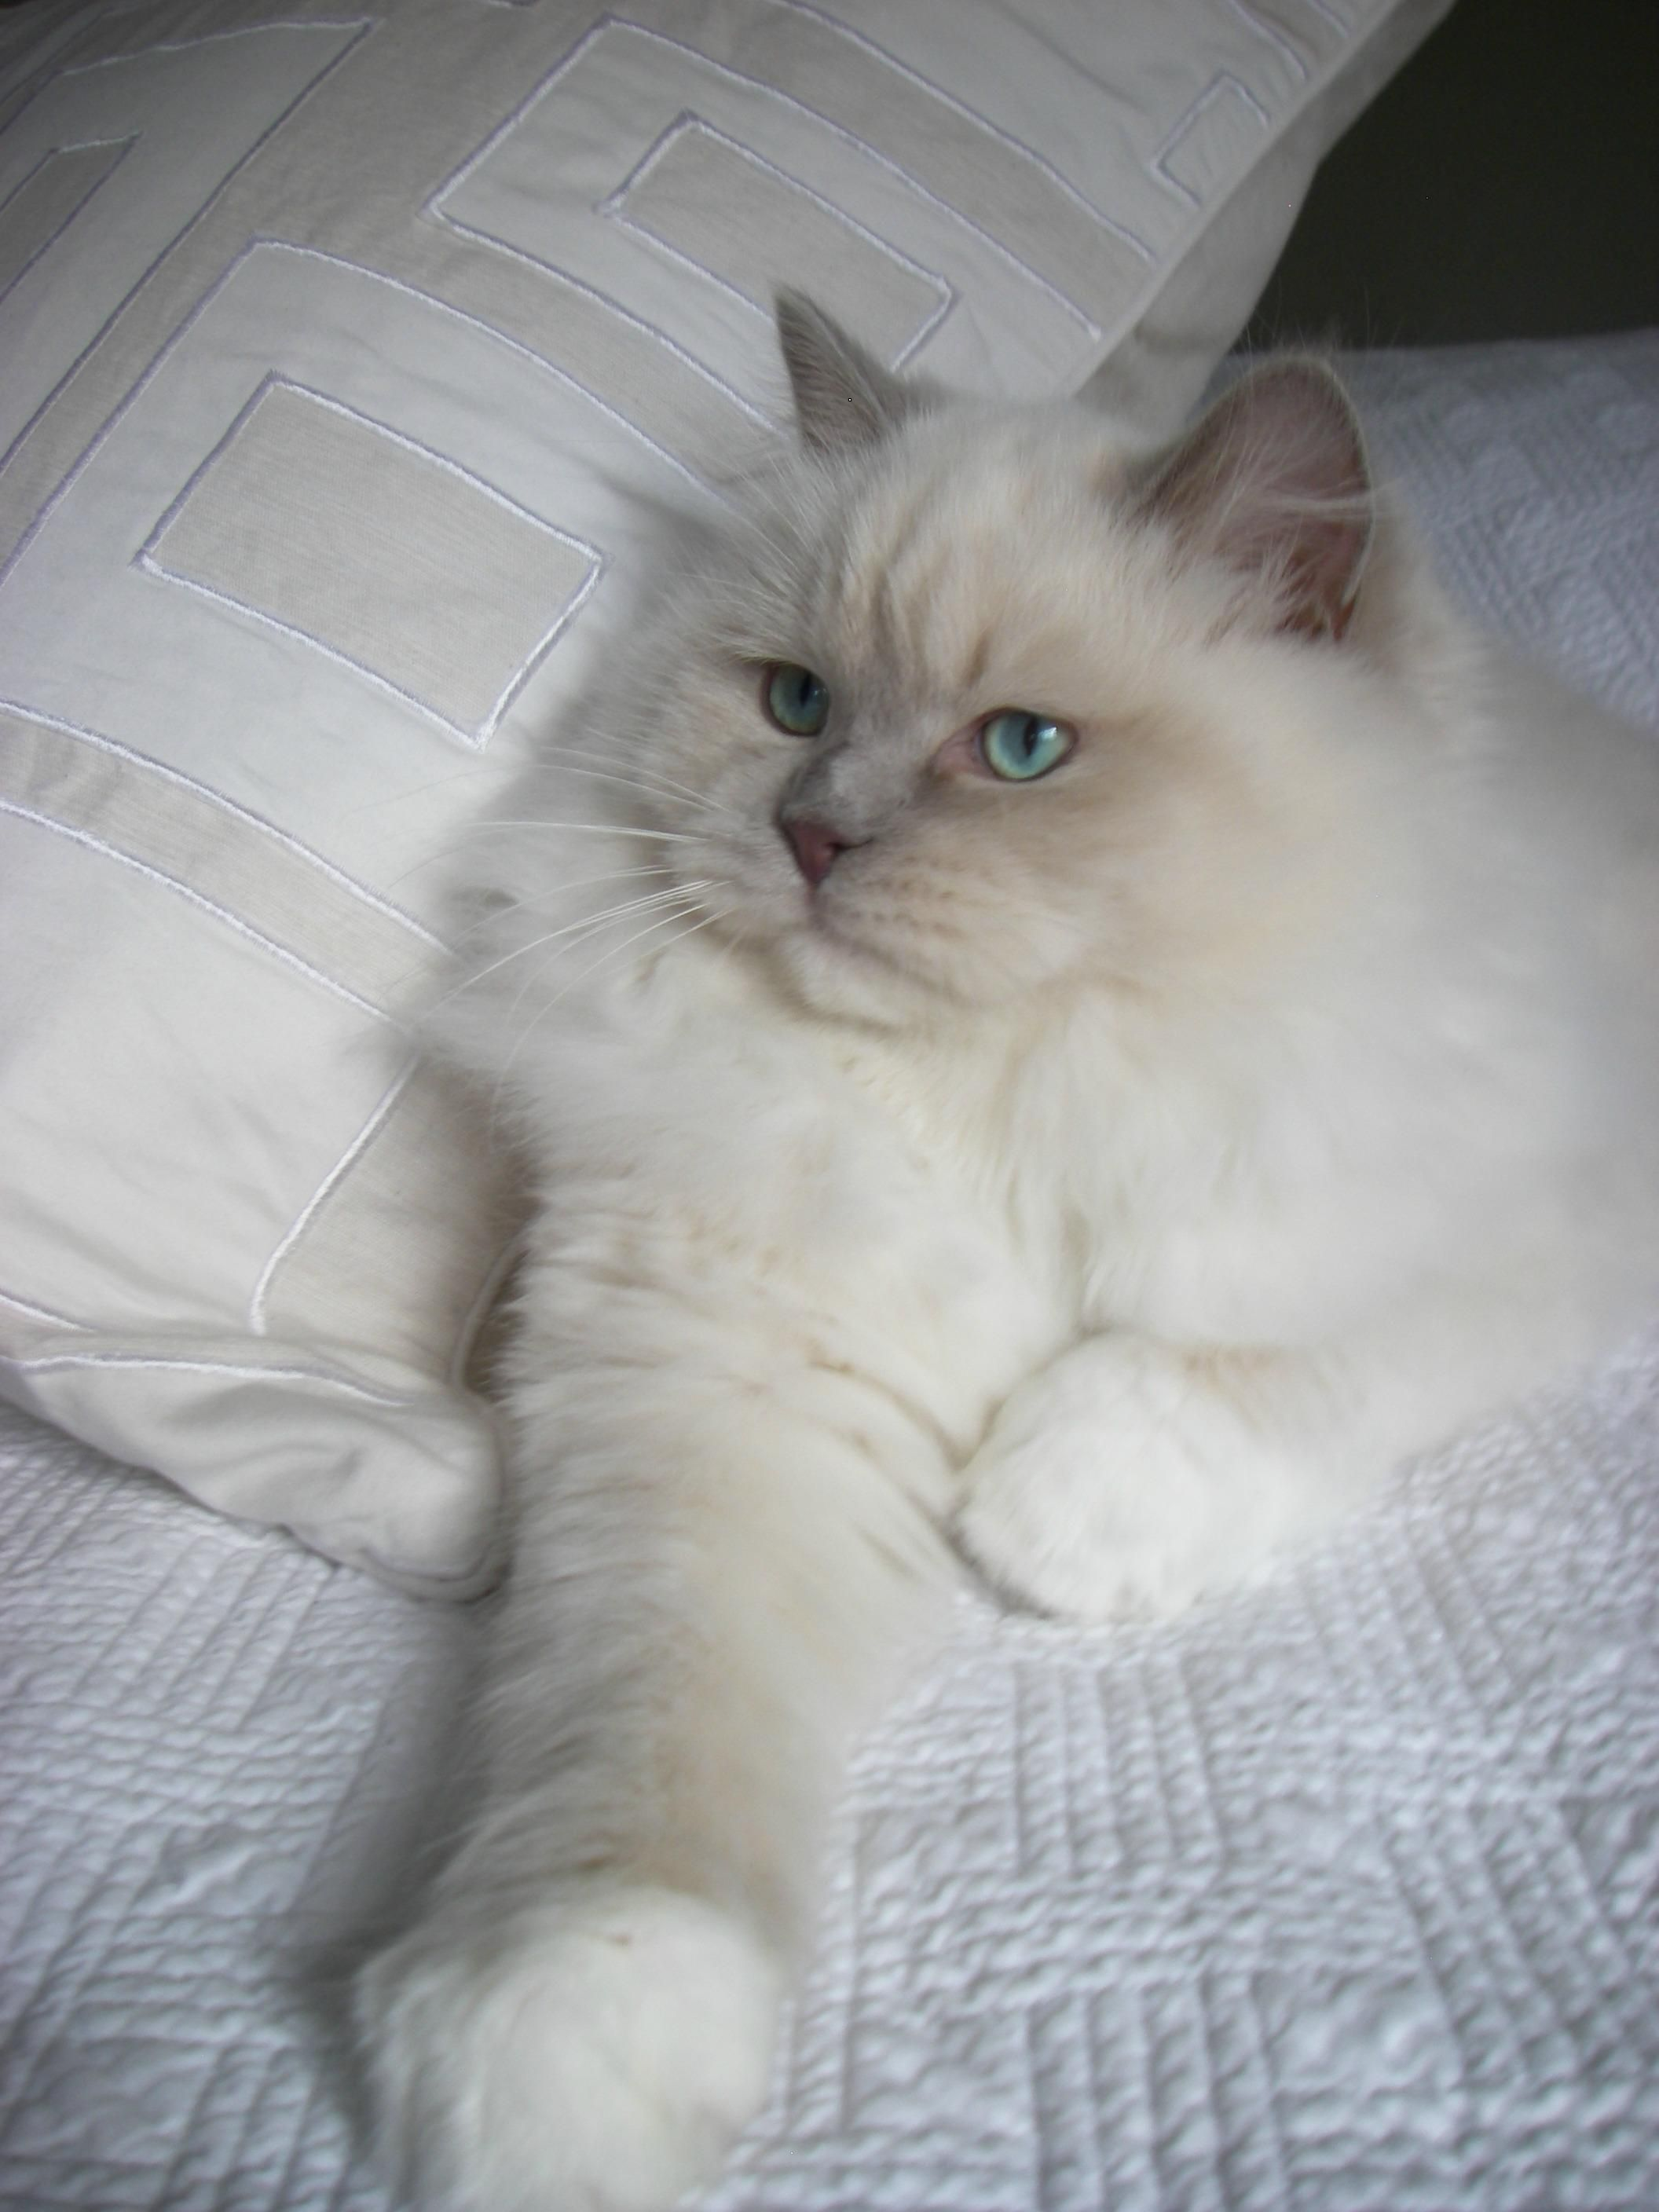 Cat Care What You Should Know About Your Pet Visit The Image Link For More Details Catstraining Cat Breeds Ragdoll Ragdoll Cat Cat Breeds